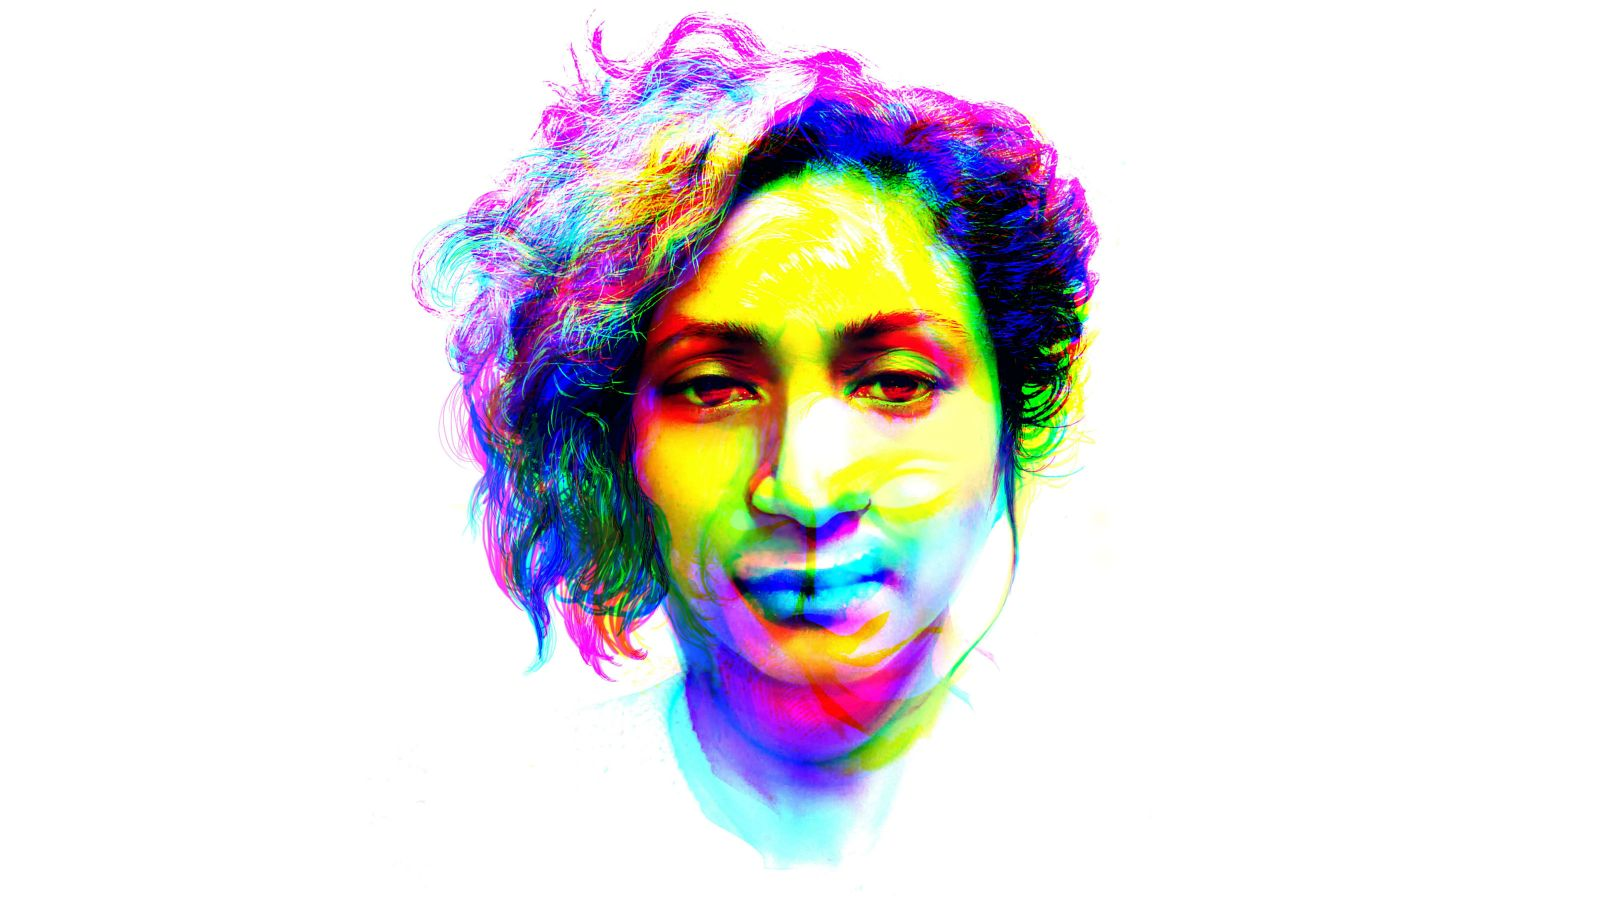 A colourful graphic of a person's head.